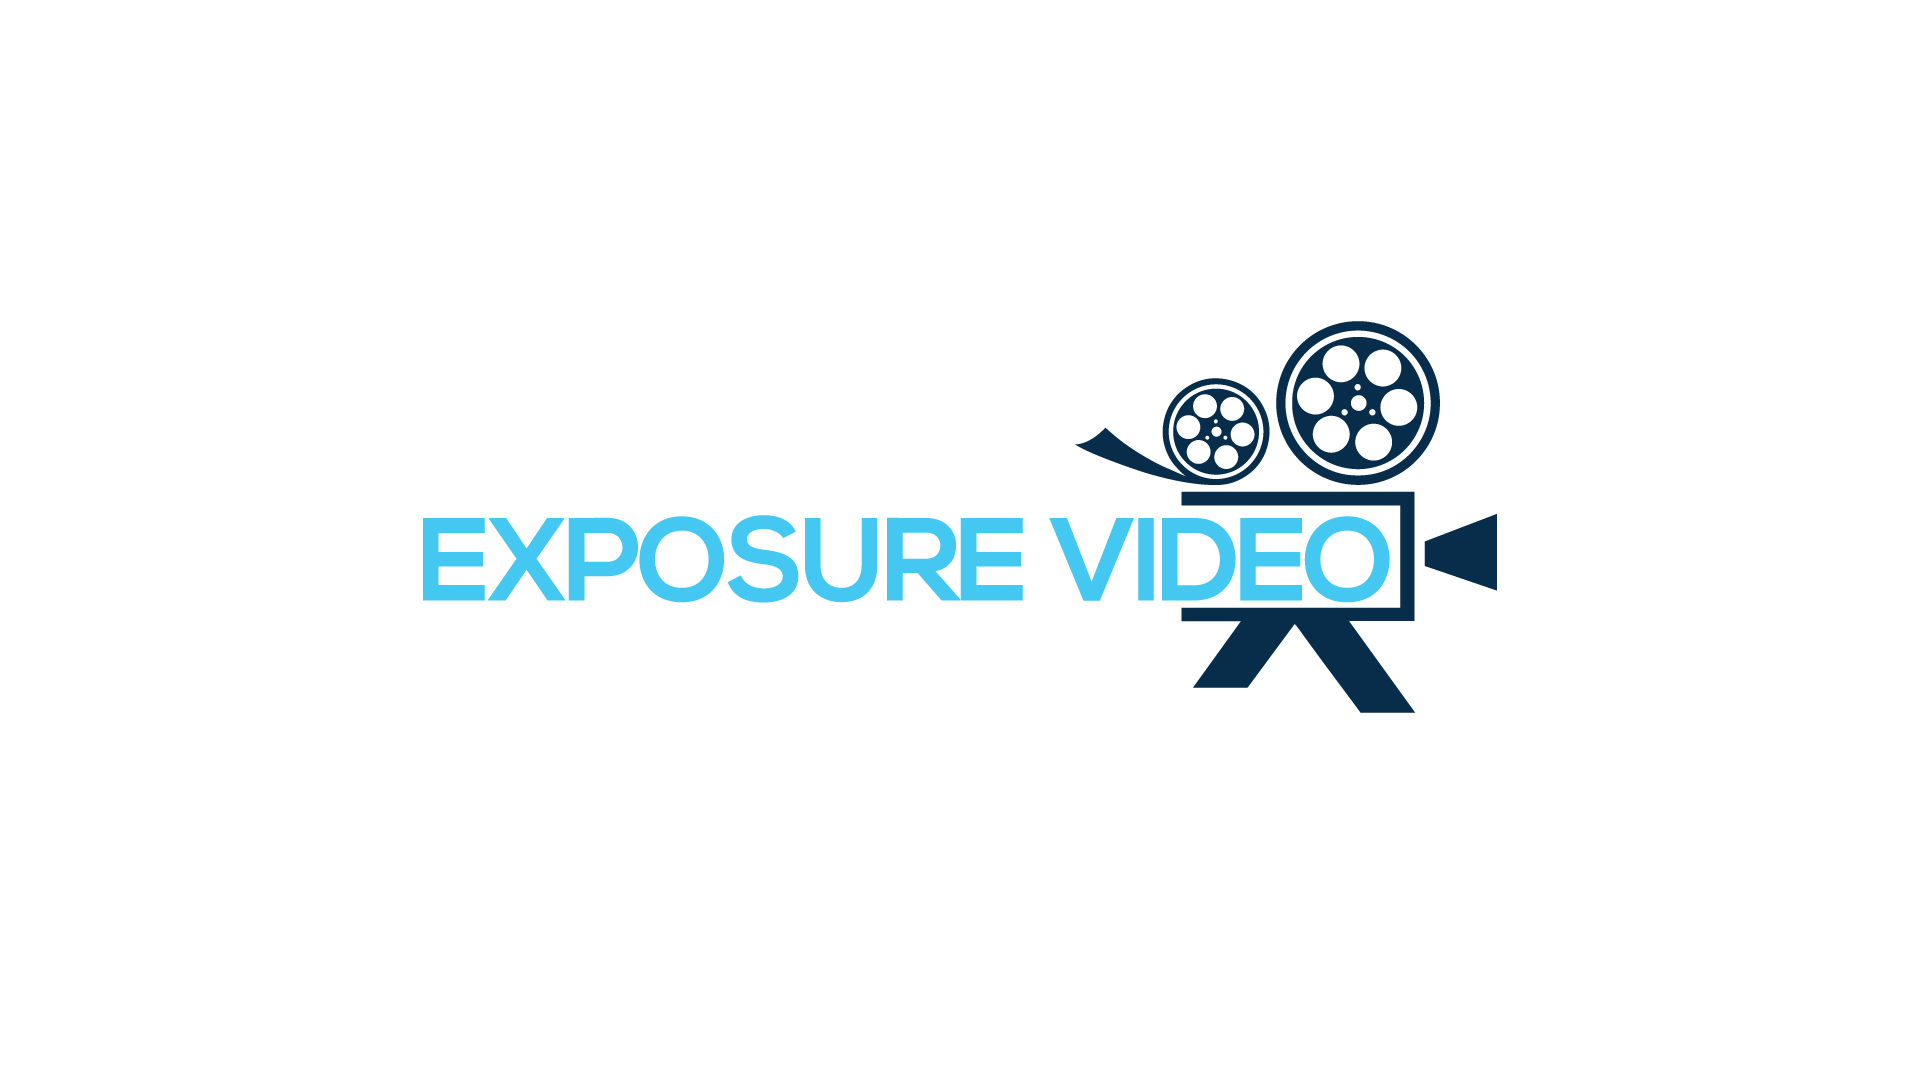 Exposure Video